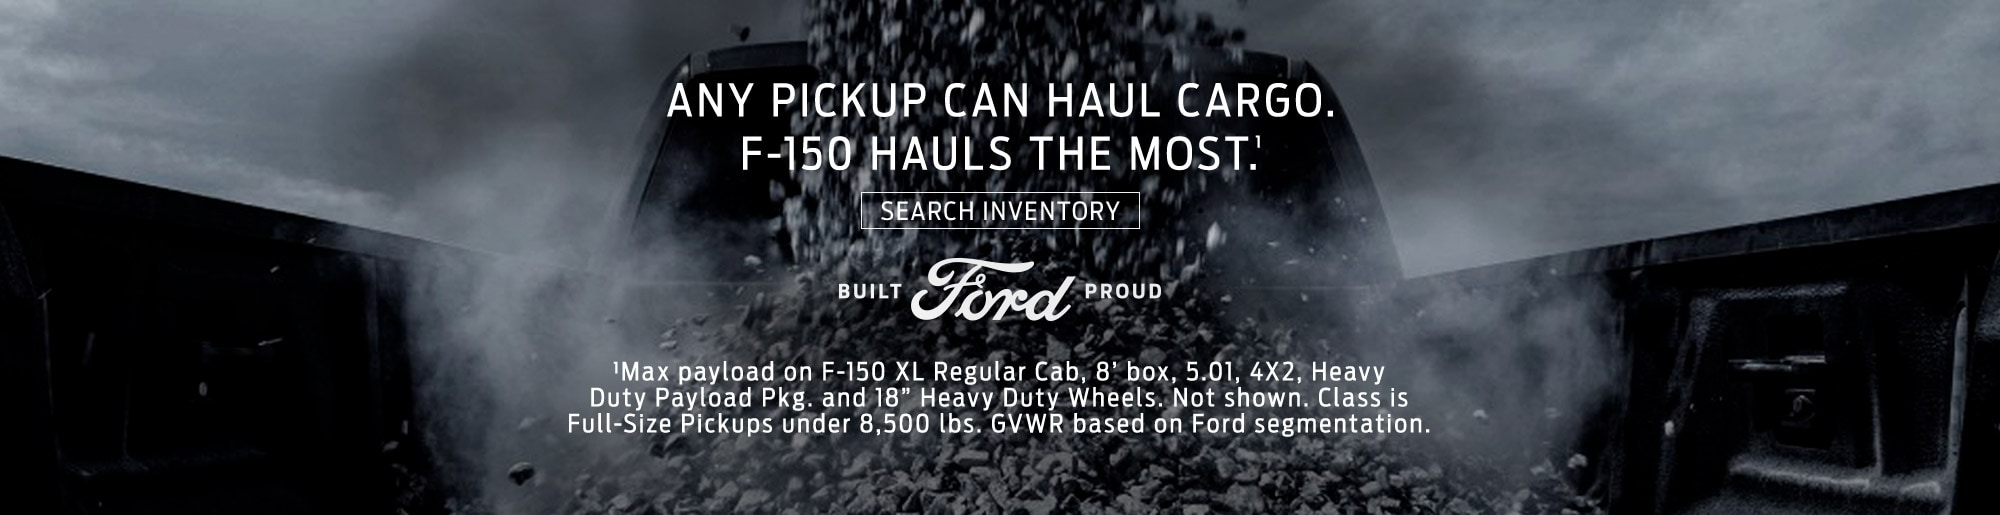 Country Ford Dealership In Southaven Ms 2014 Focus Horn Schedule Your Next Service Appointment